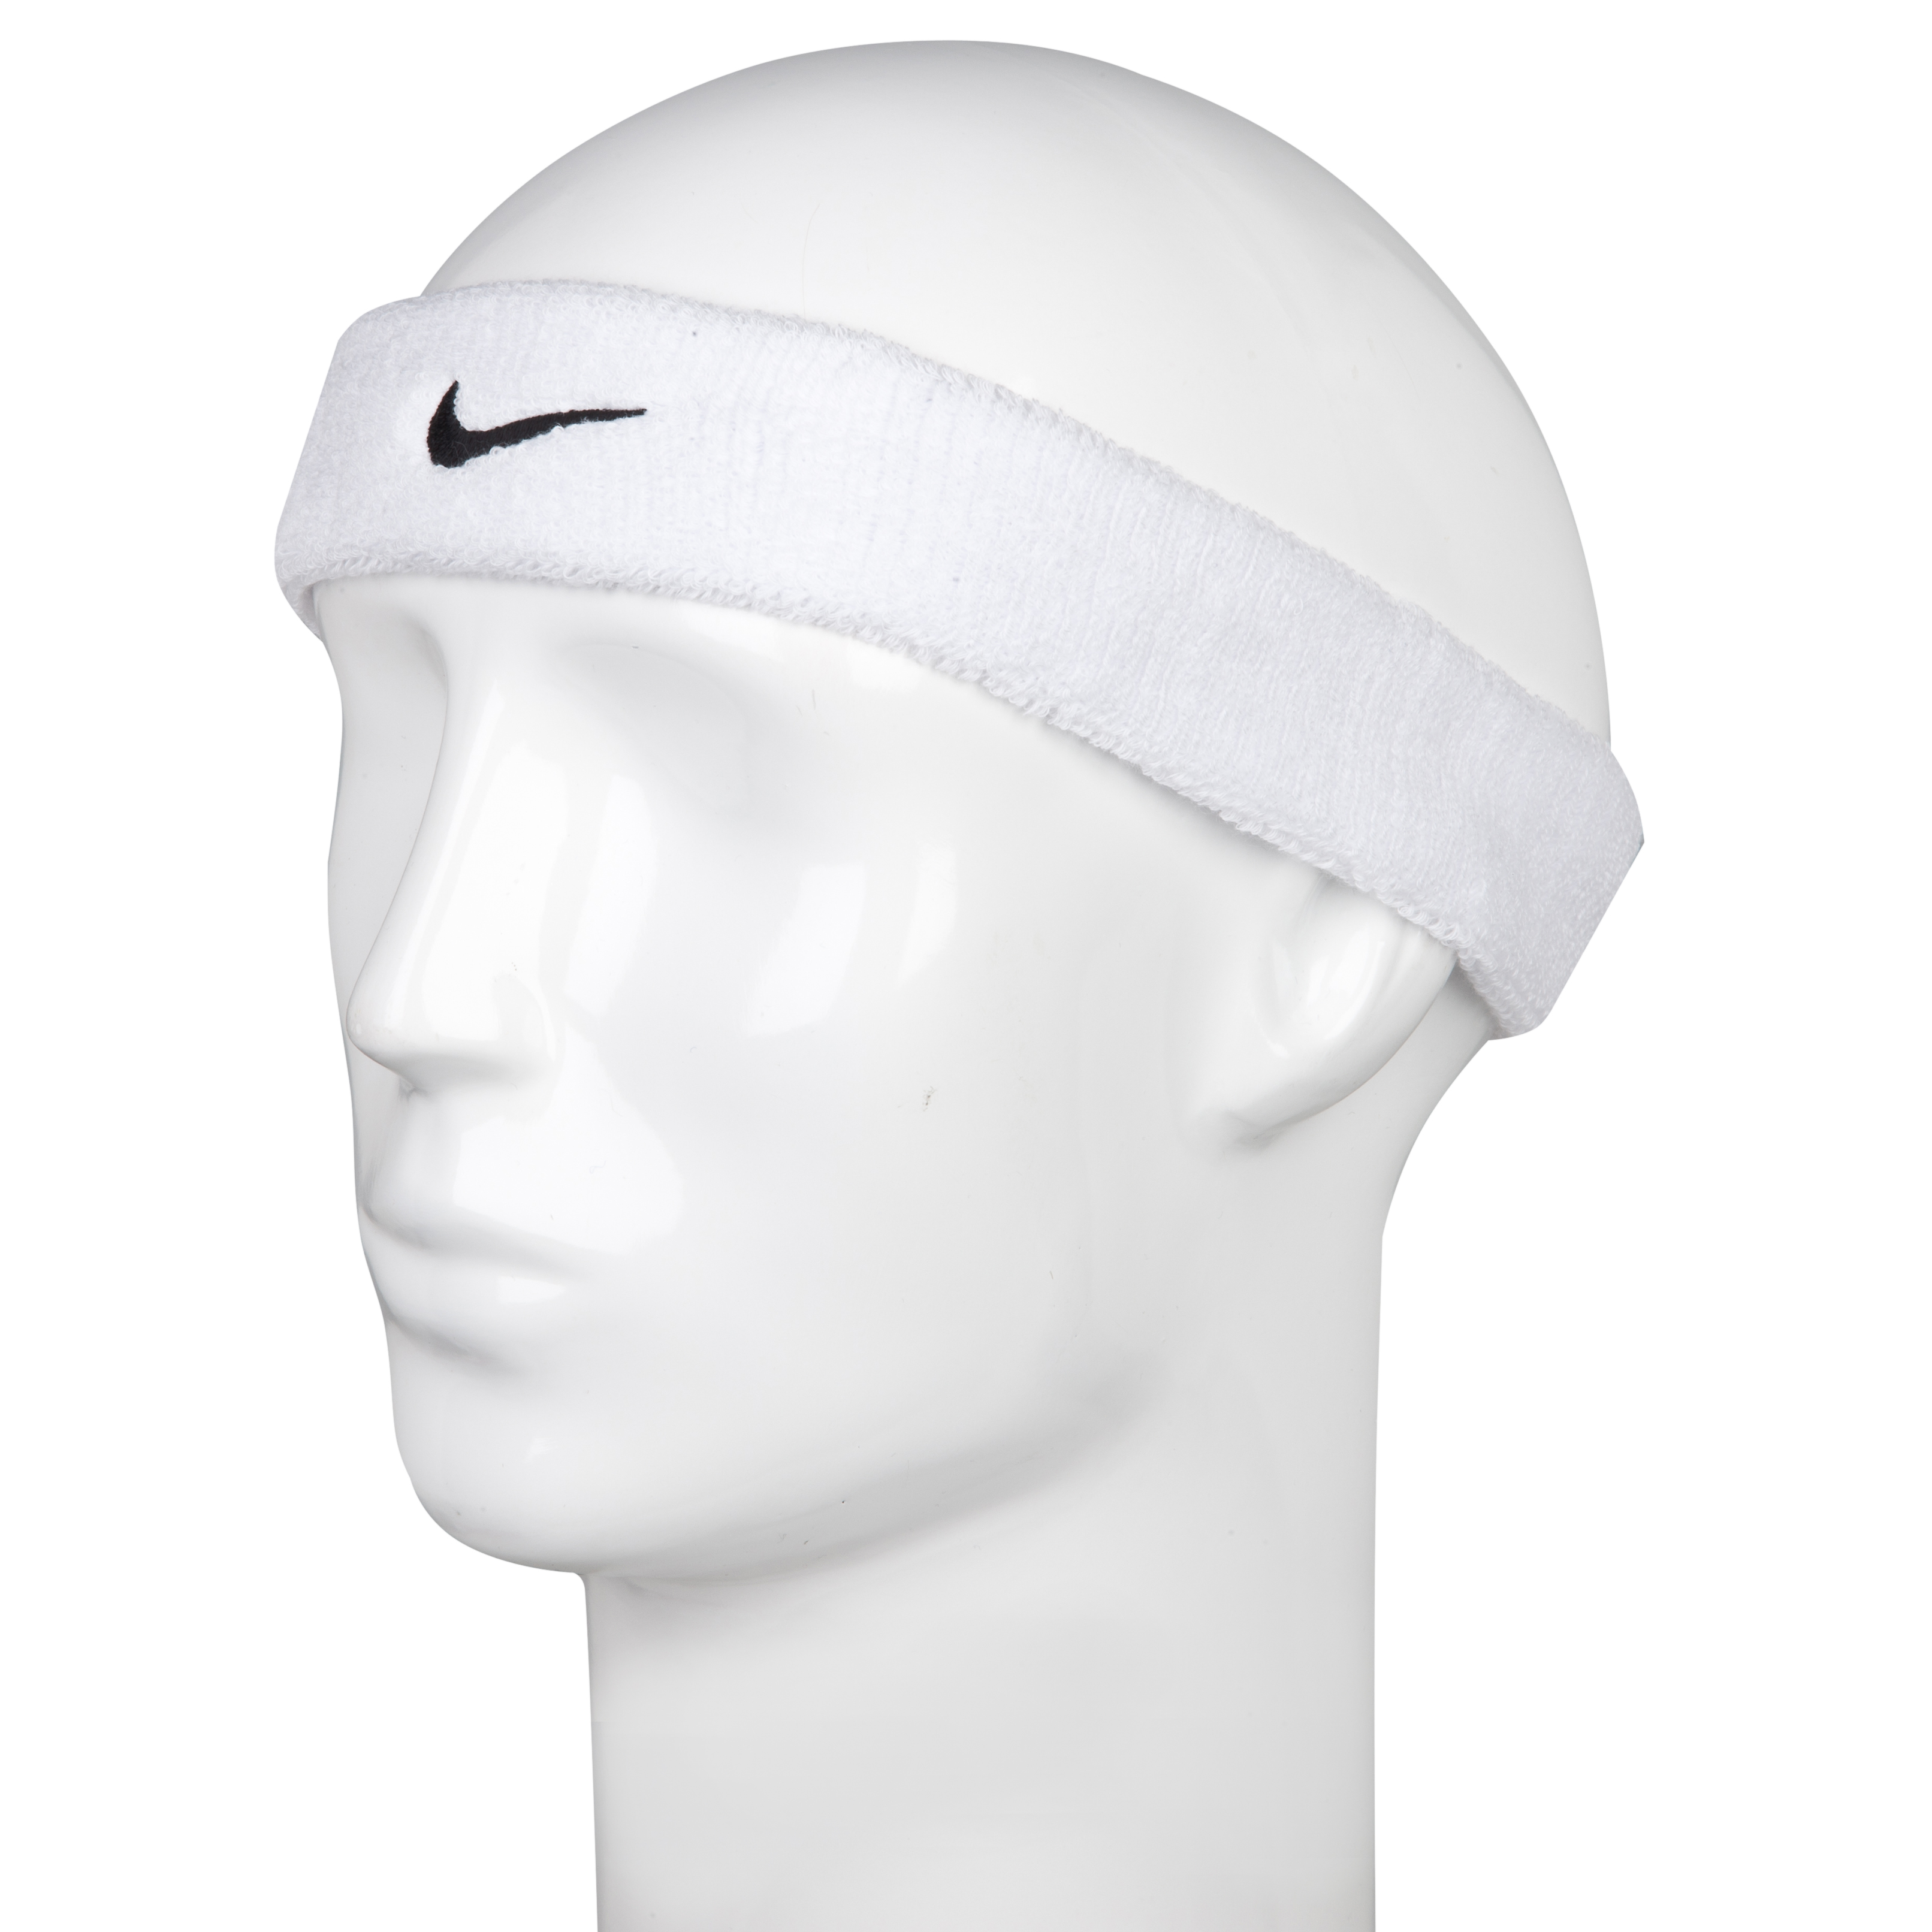 Nike Swoosh Headbands - White/Black